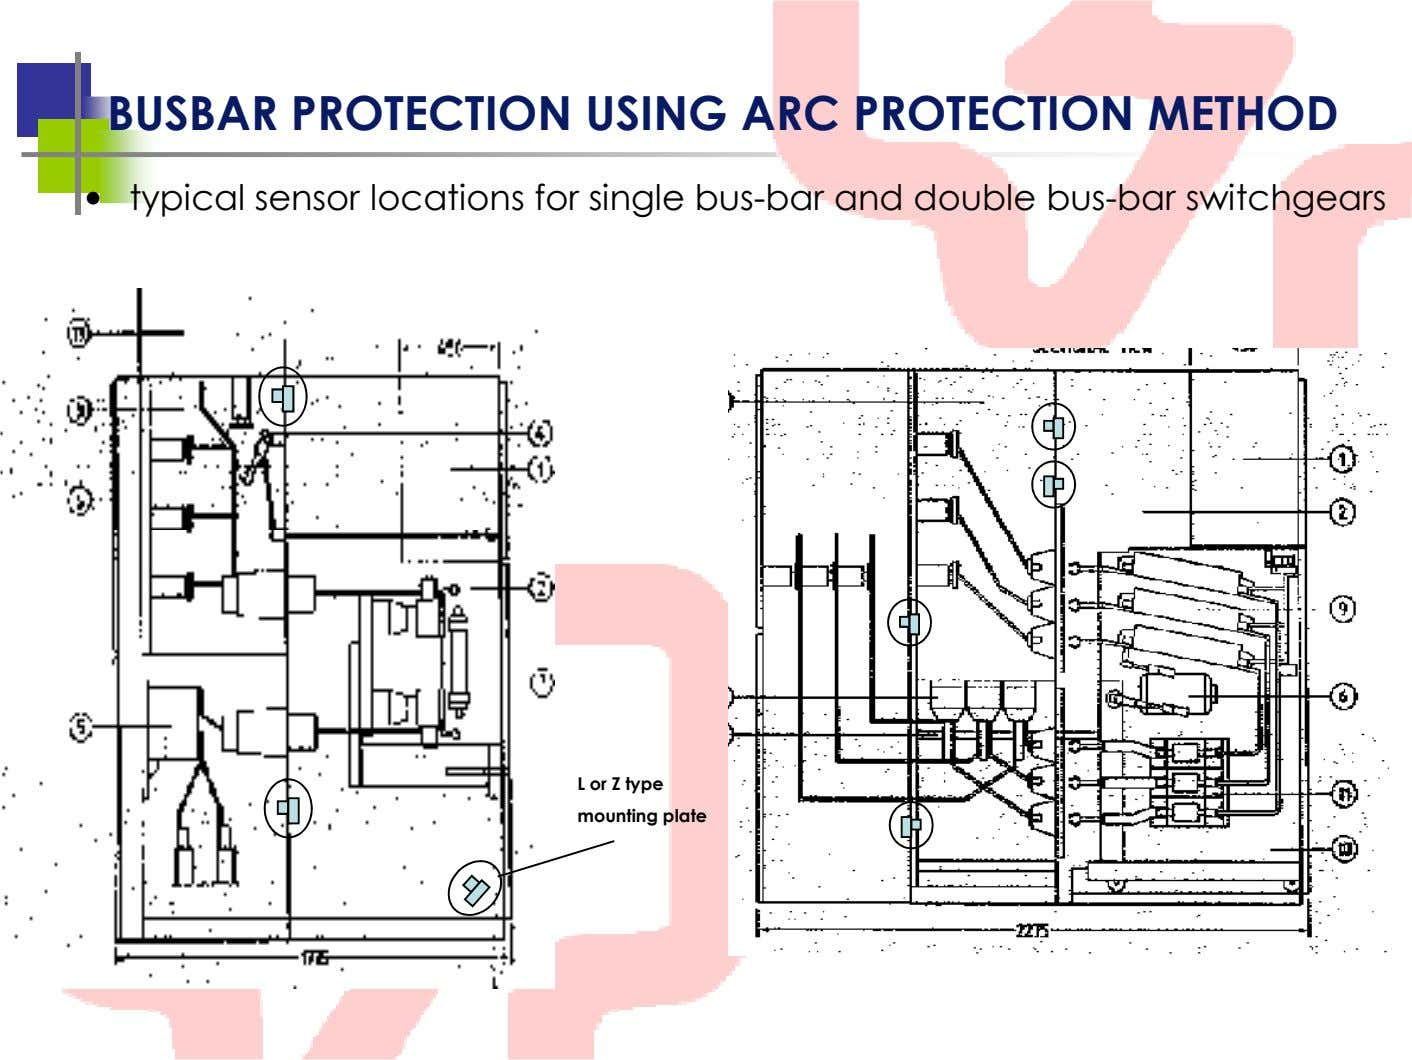 BUSBAR PROTECTION USING ARC PROTECTION METHOD • typical sensor locations for single bus-bar and double